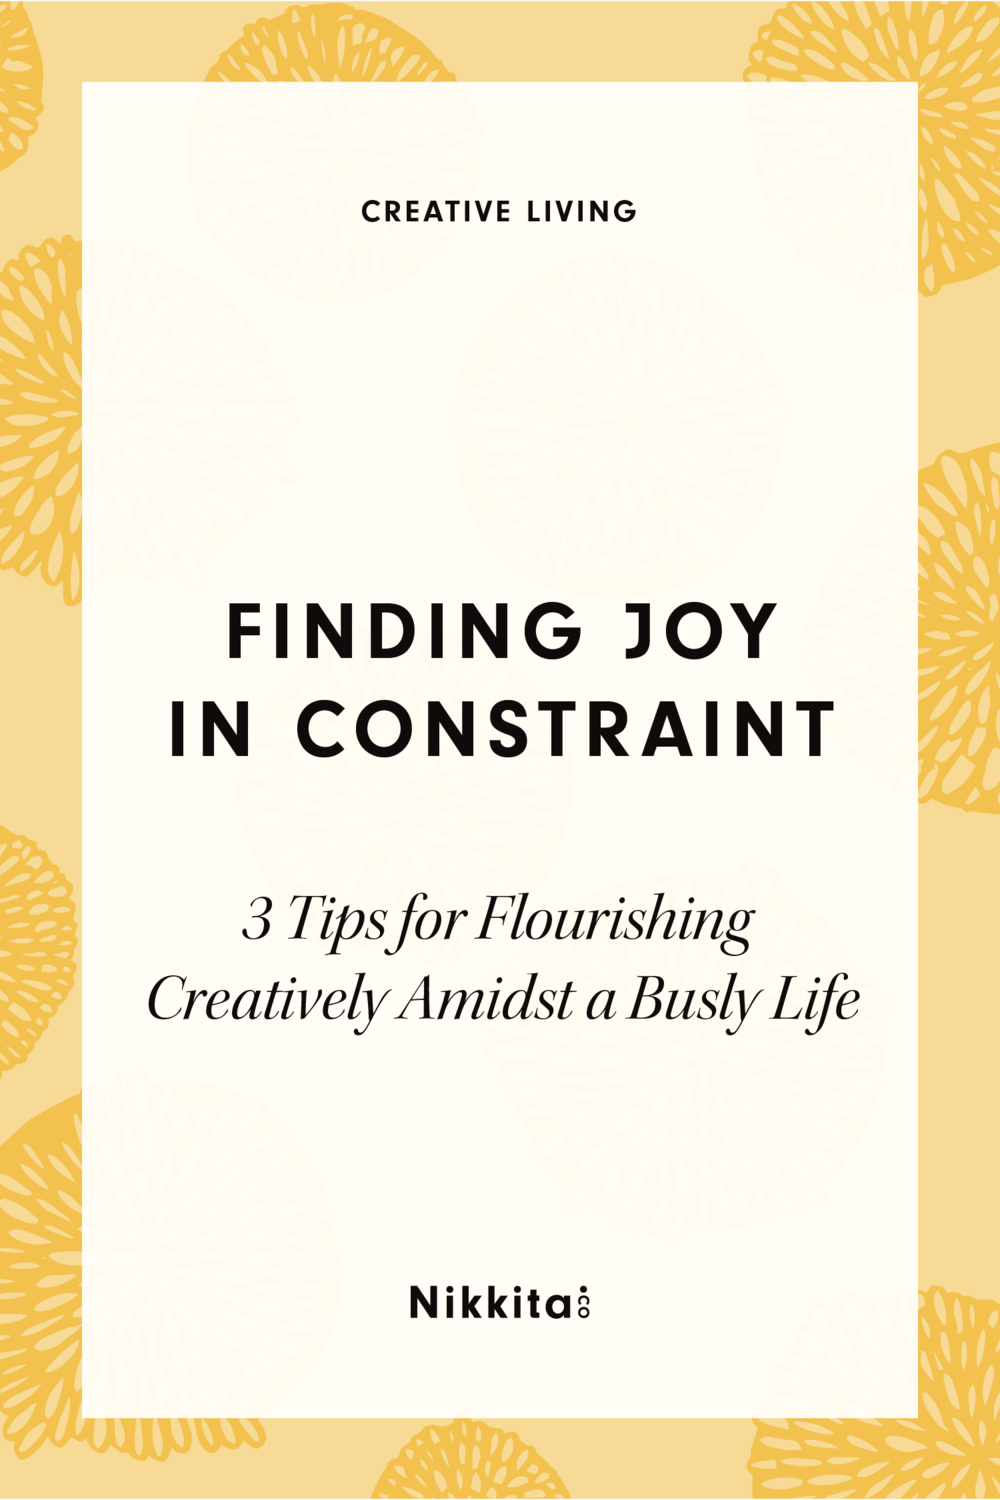 Finding Joy in Constraint | 3 Tips for Flourishing Creatively | Read more at http://nikkita.co